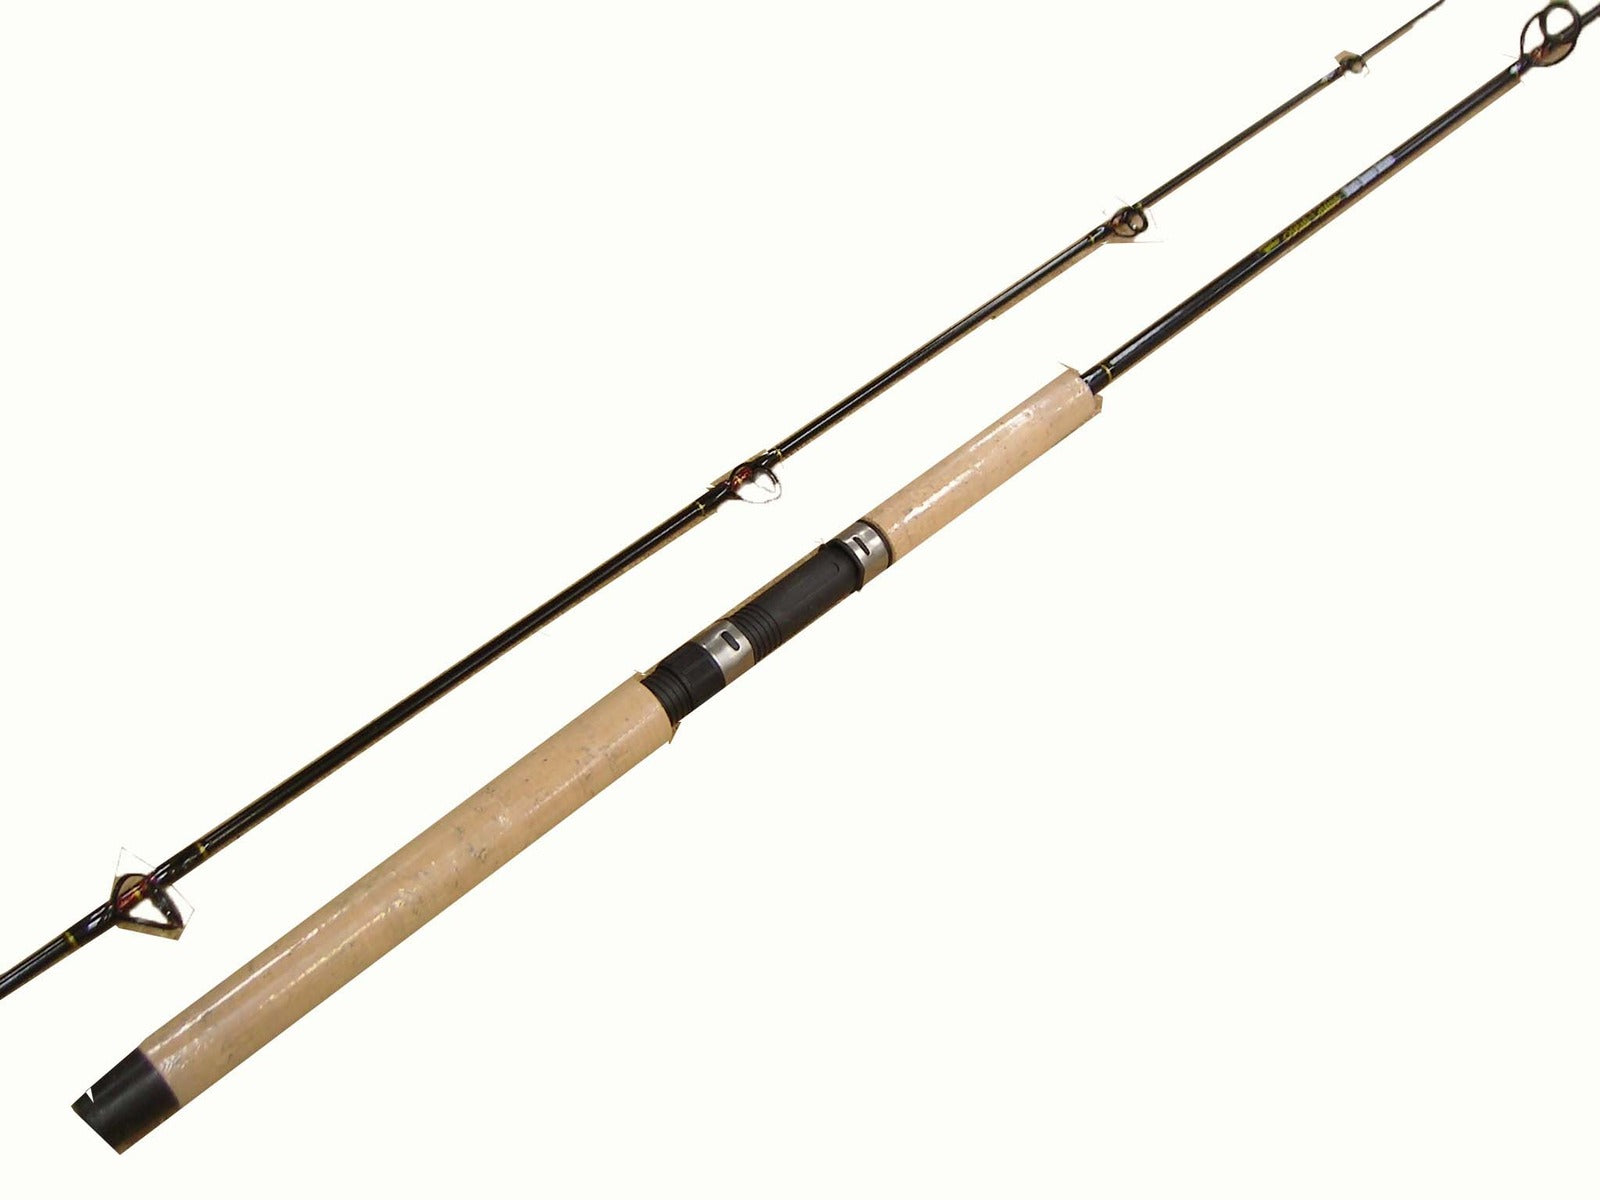 Jarvis Walker Black Queen Deluxe Solid Glass Spin Rod - 8ft